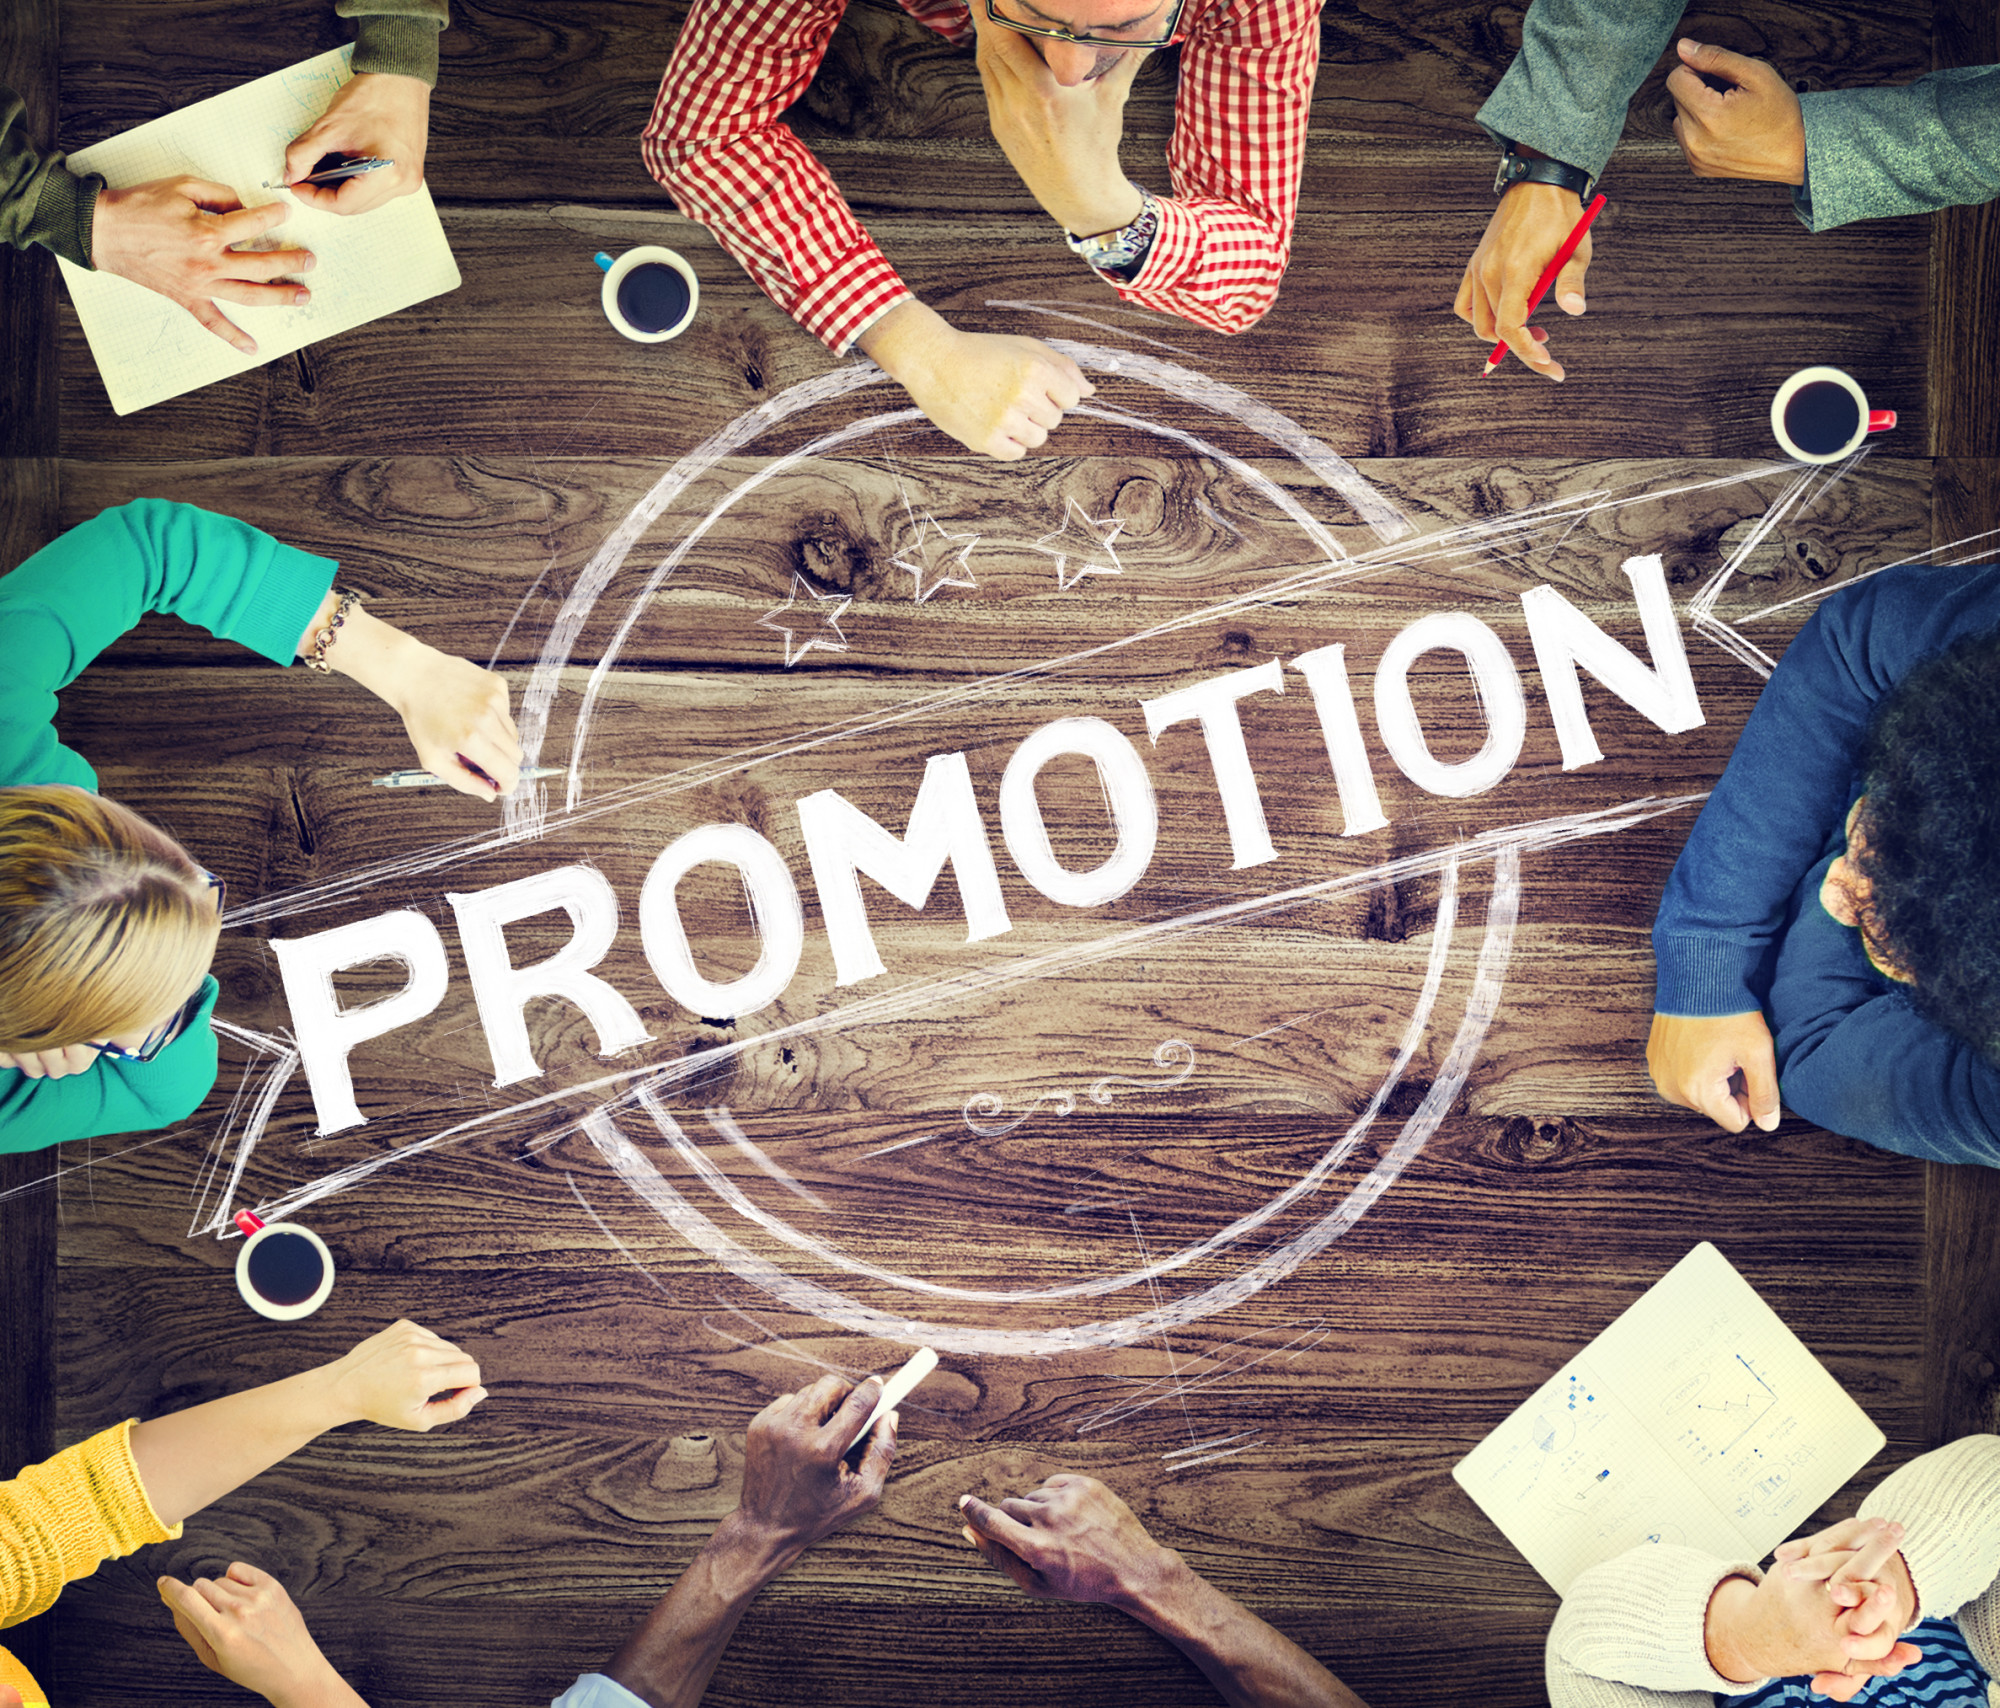 promotion text and group of people